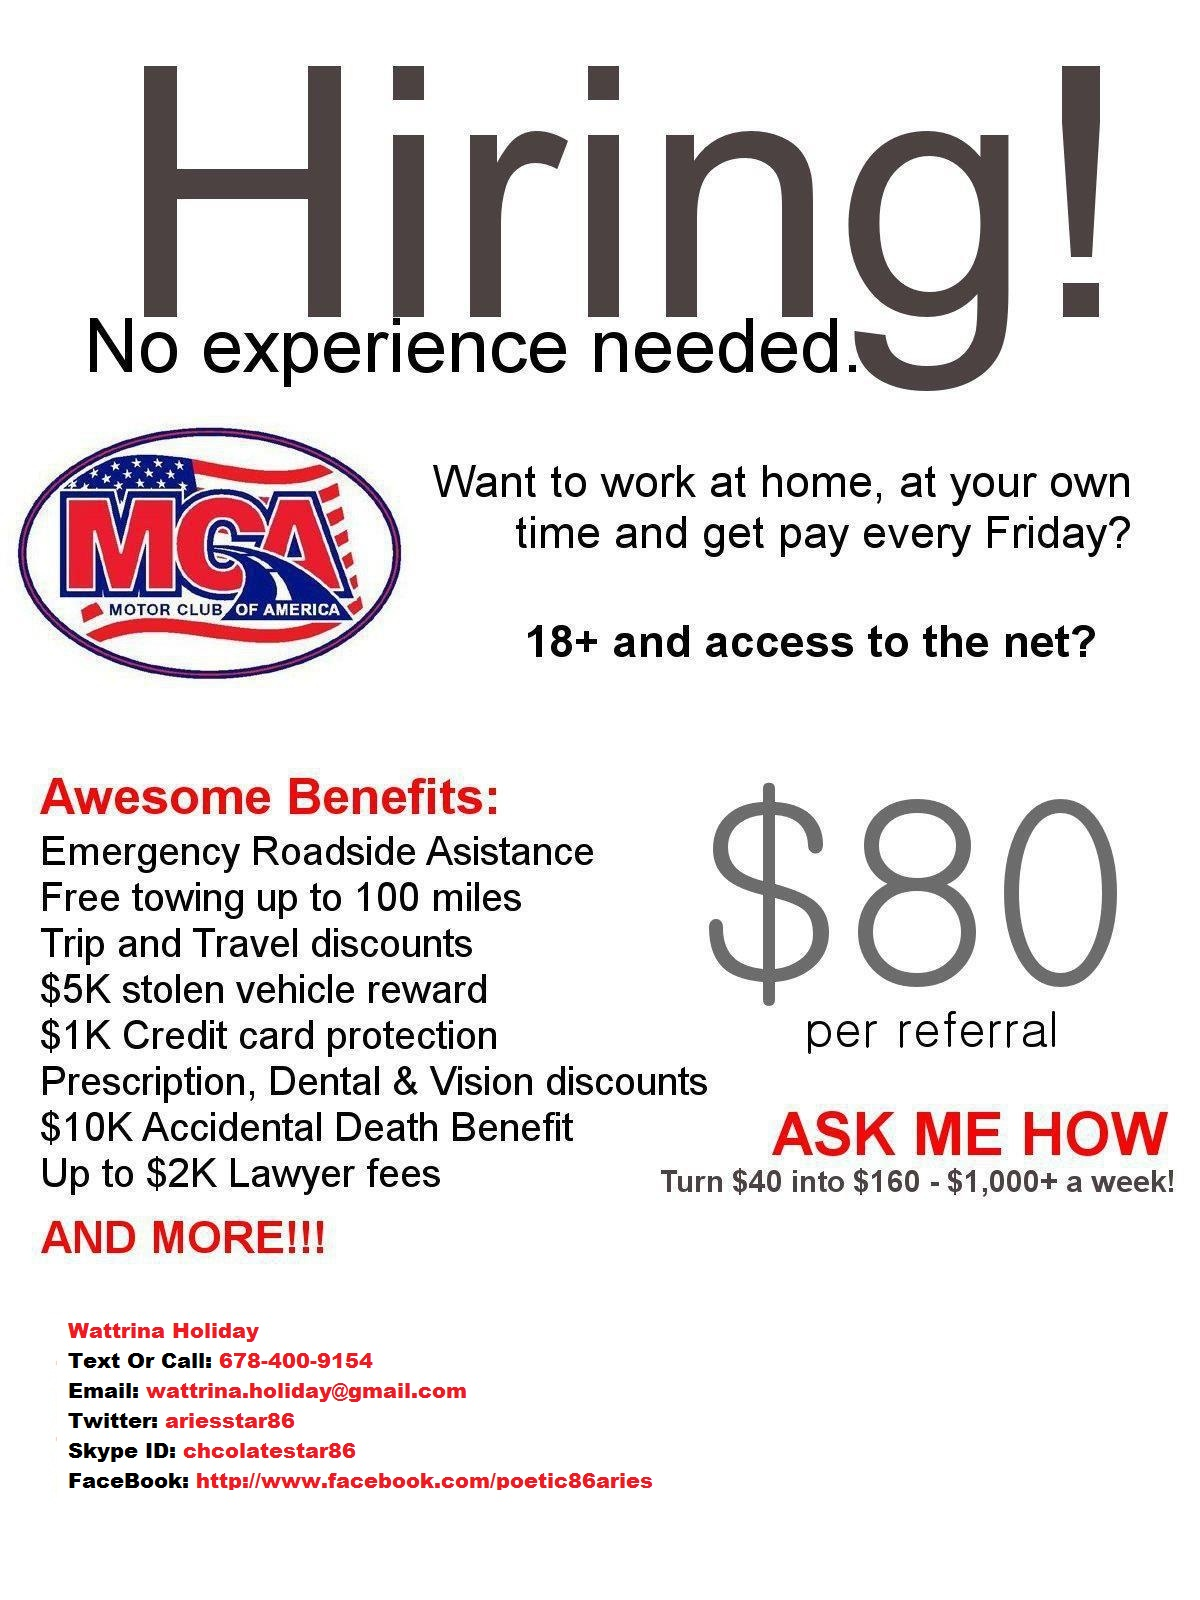 Making money from working at home feel free to ask any questions